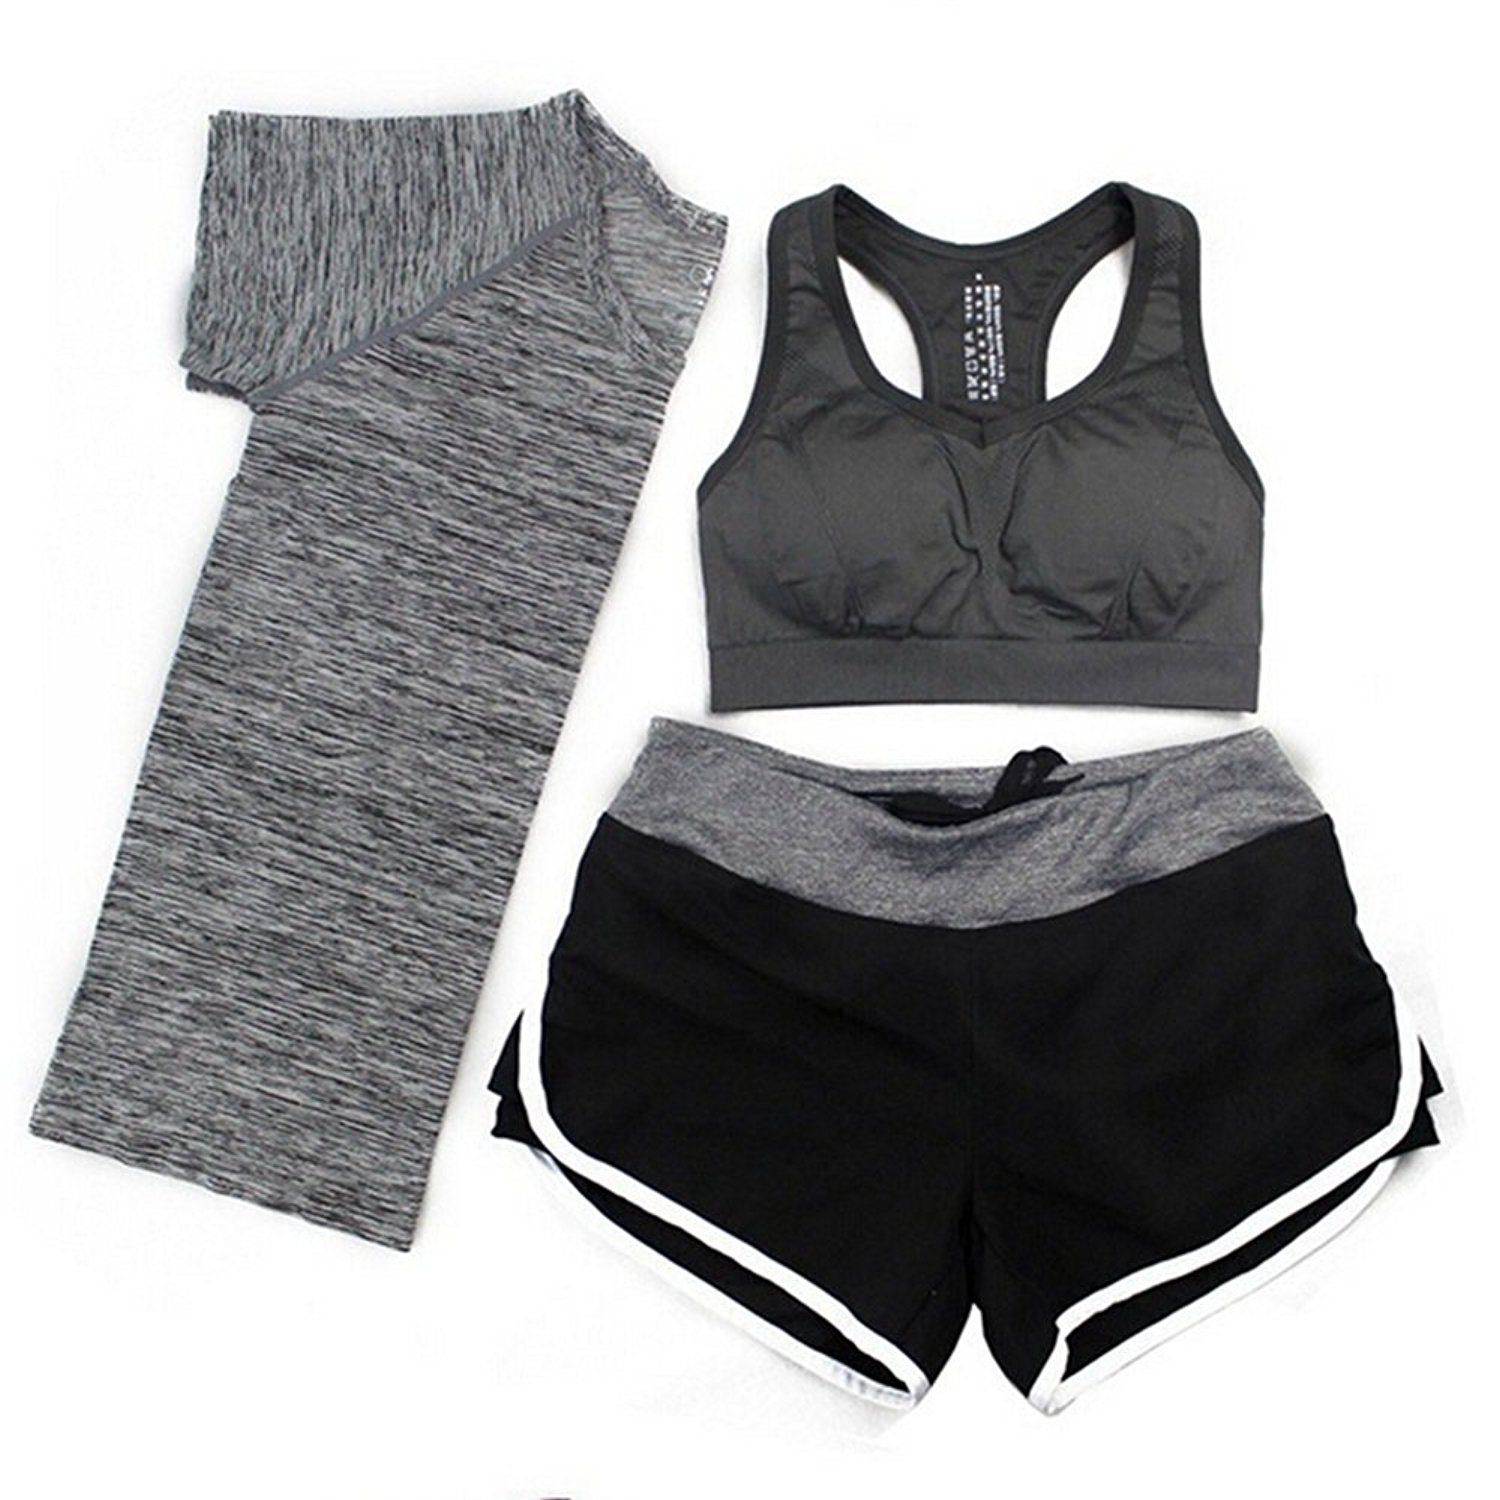 ec5e541d6d Get Quotations · jielimian 3pcs lady sport set gym yoga suit t-shirt sport  bra and shorts sets